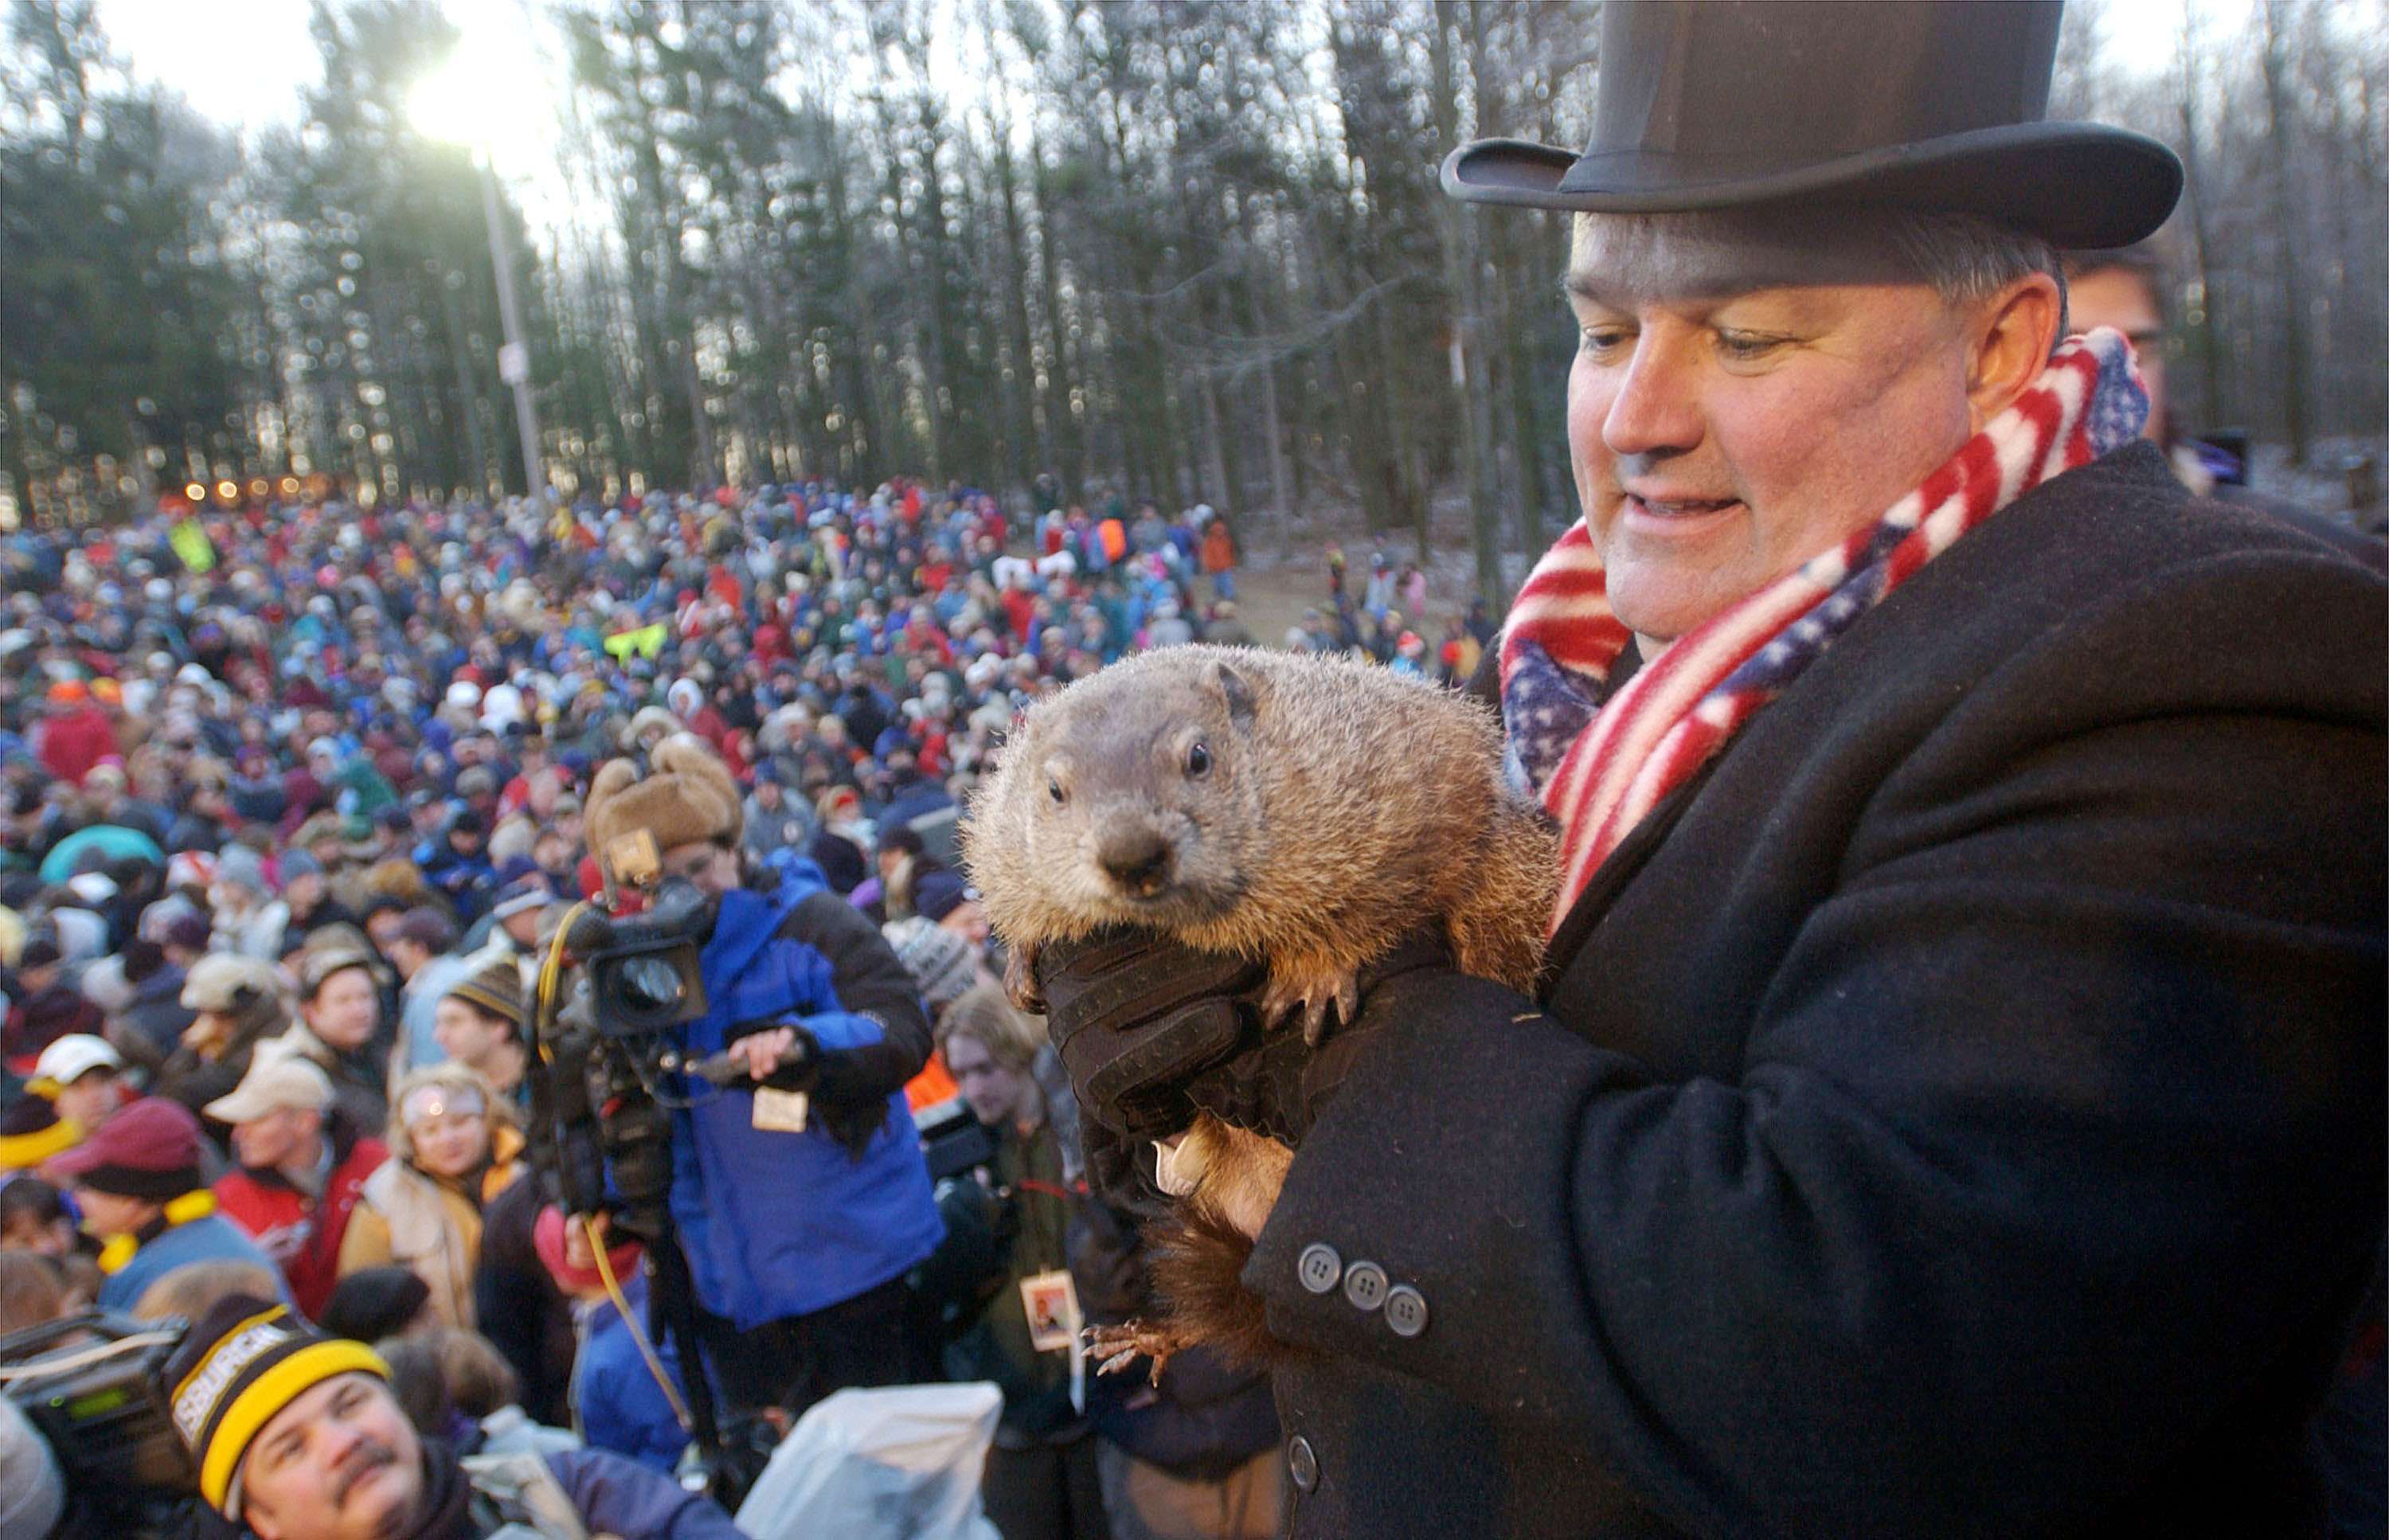 Groundhog Phil predicts more cold weather